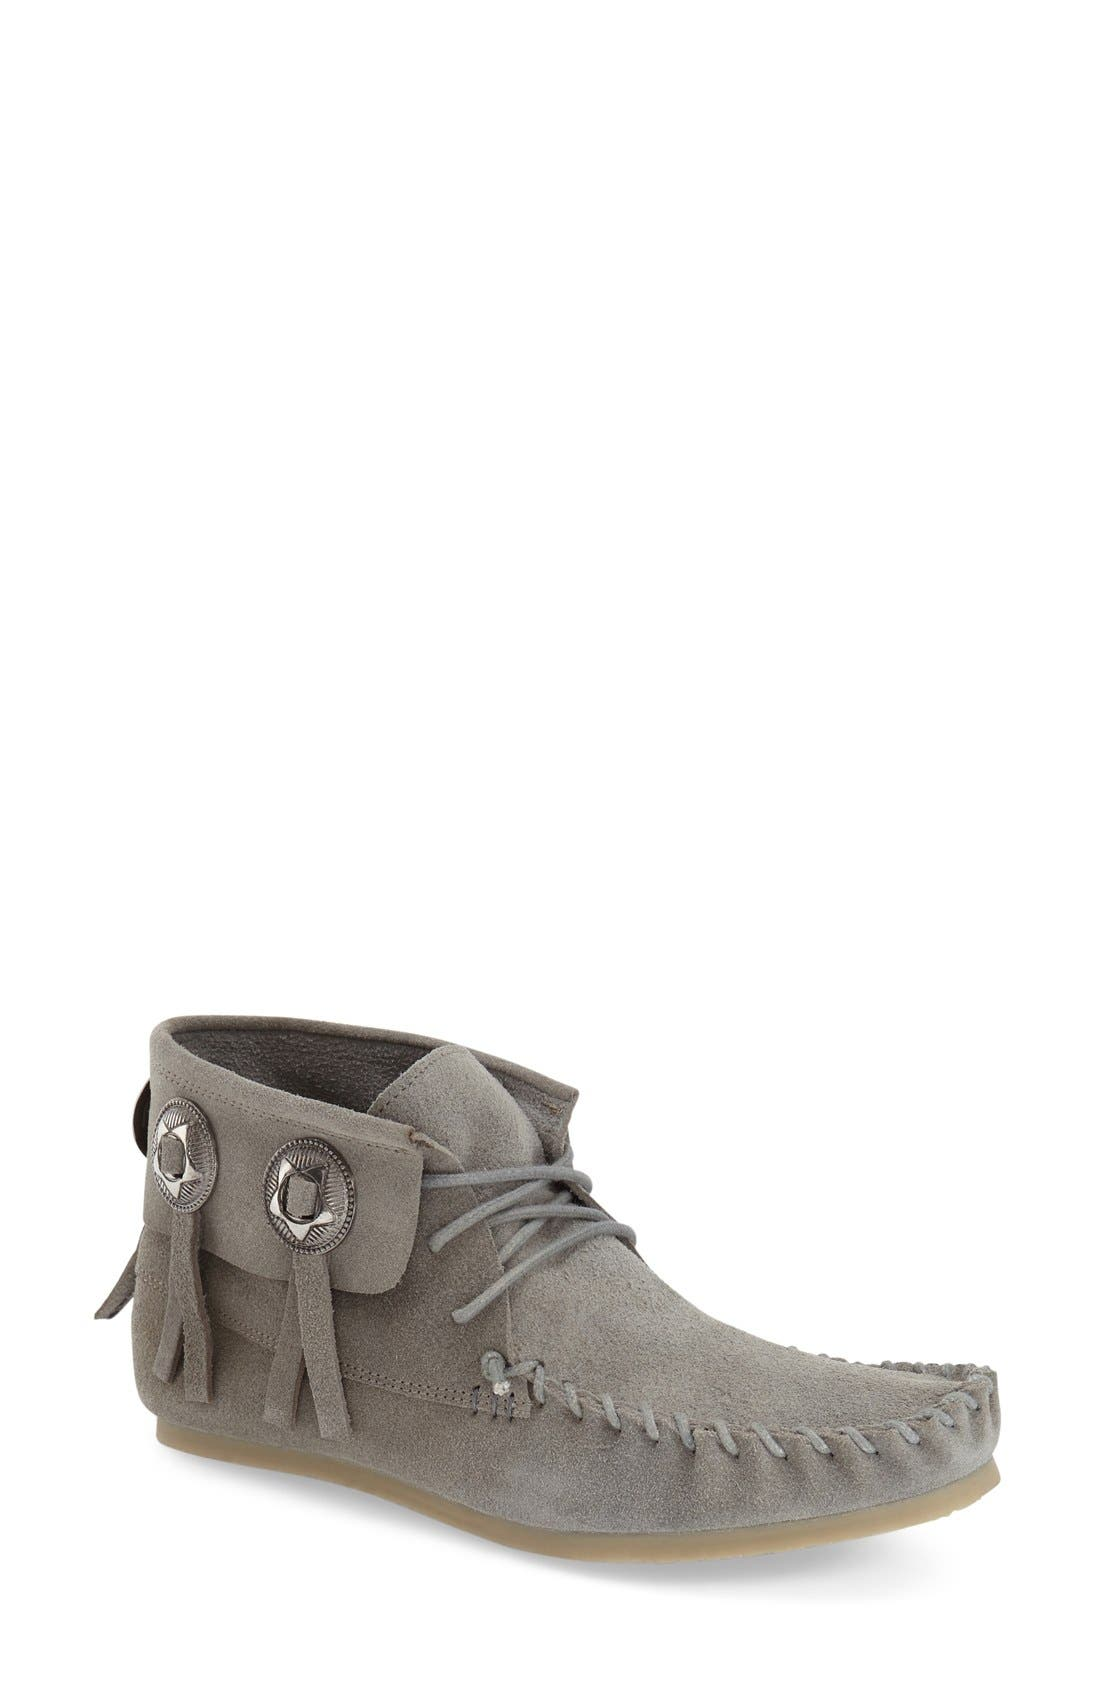 COCONUTS BY MATISSE, 'Travis' Moccasin Bootie, Main thumbnail 1, color, 029